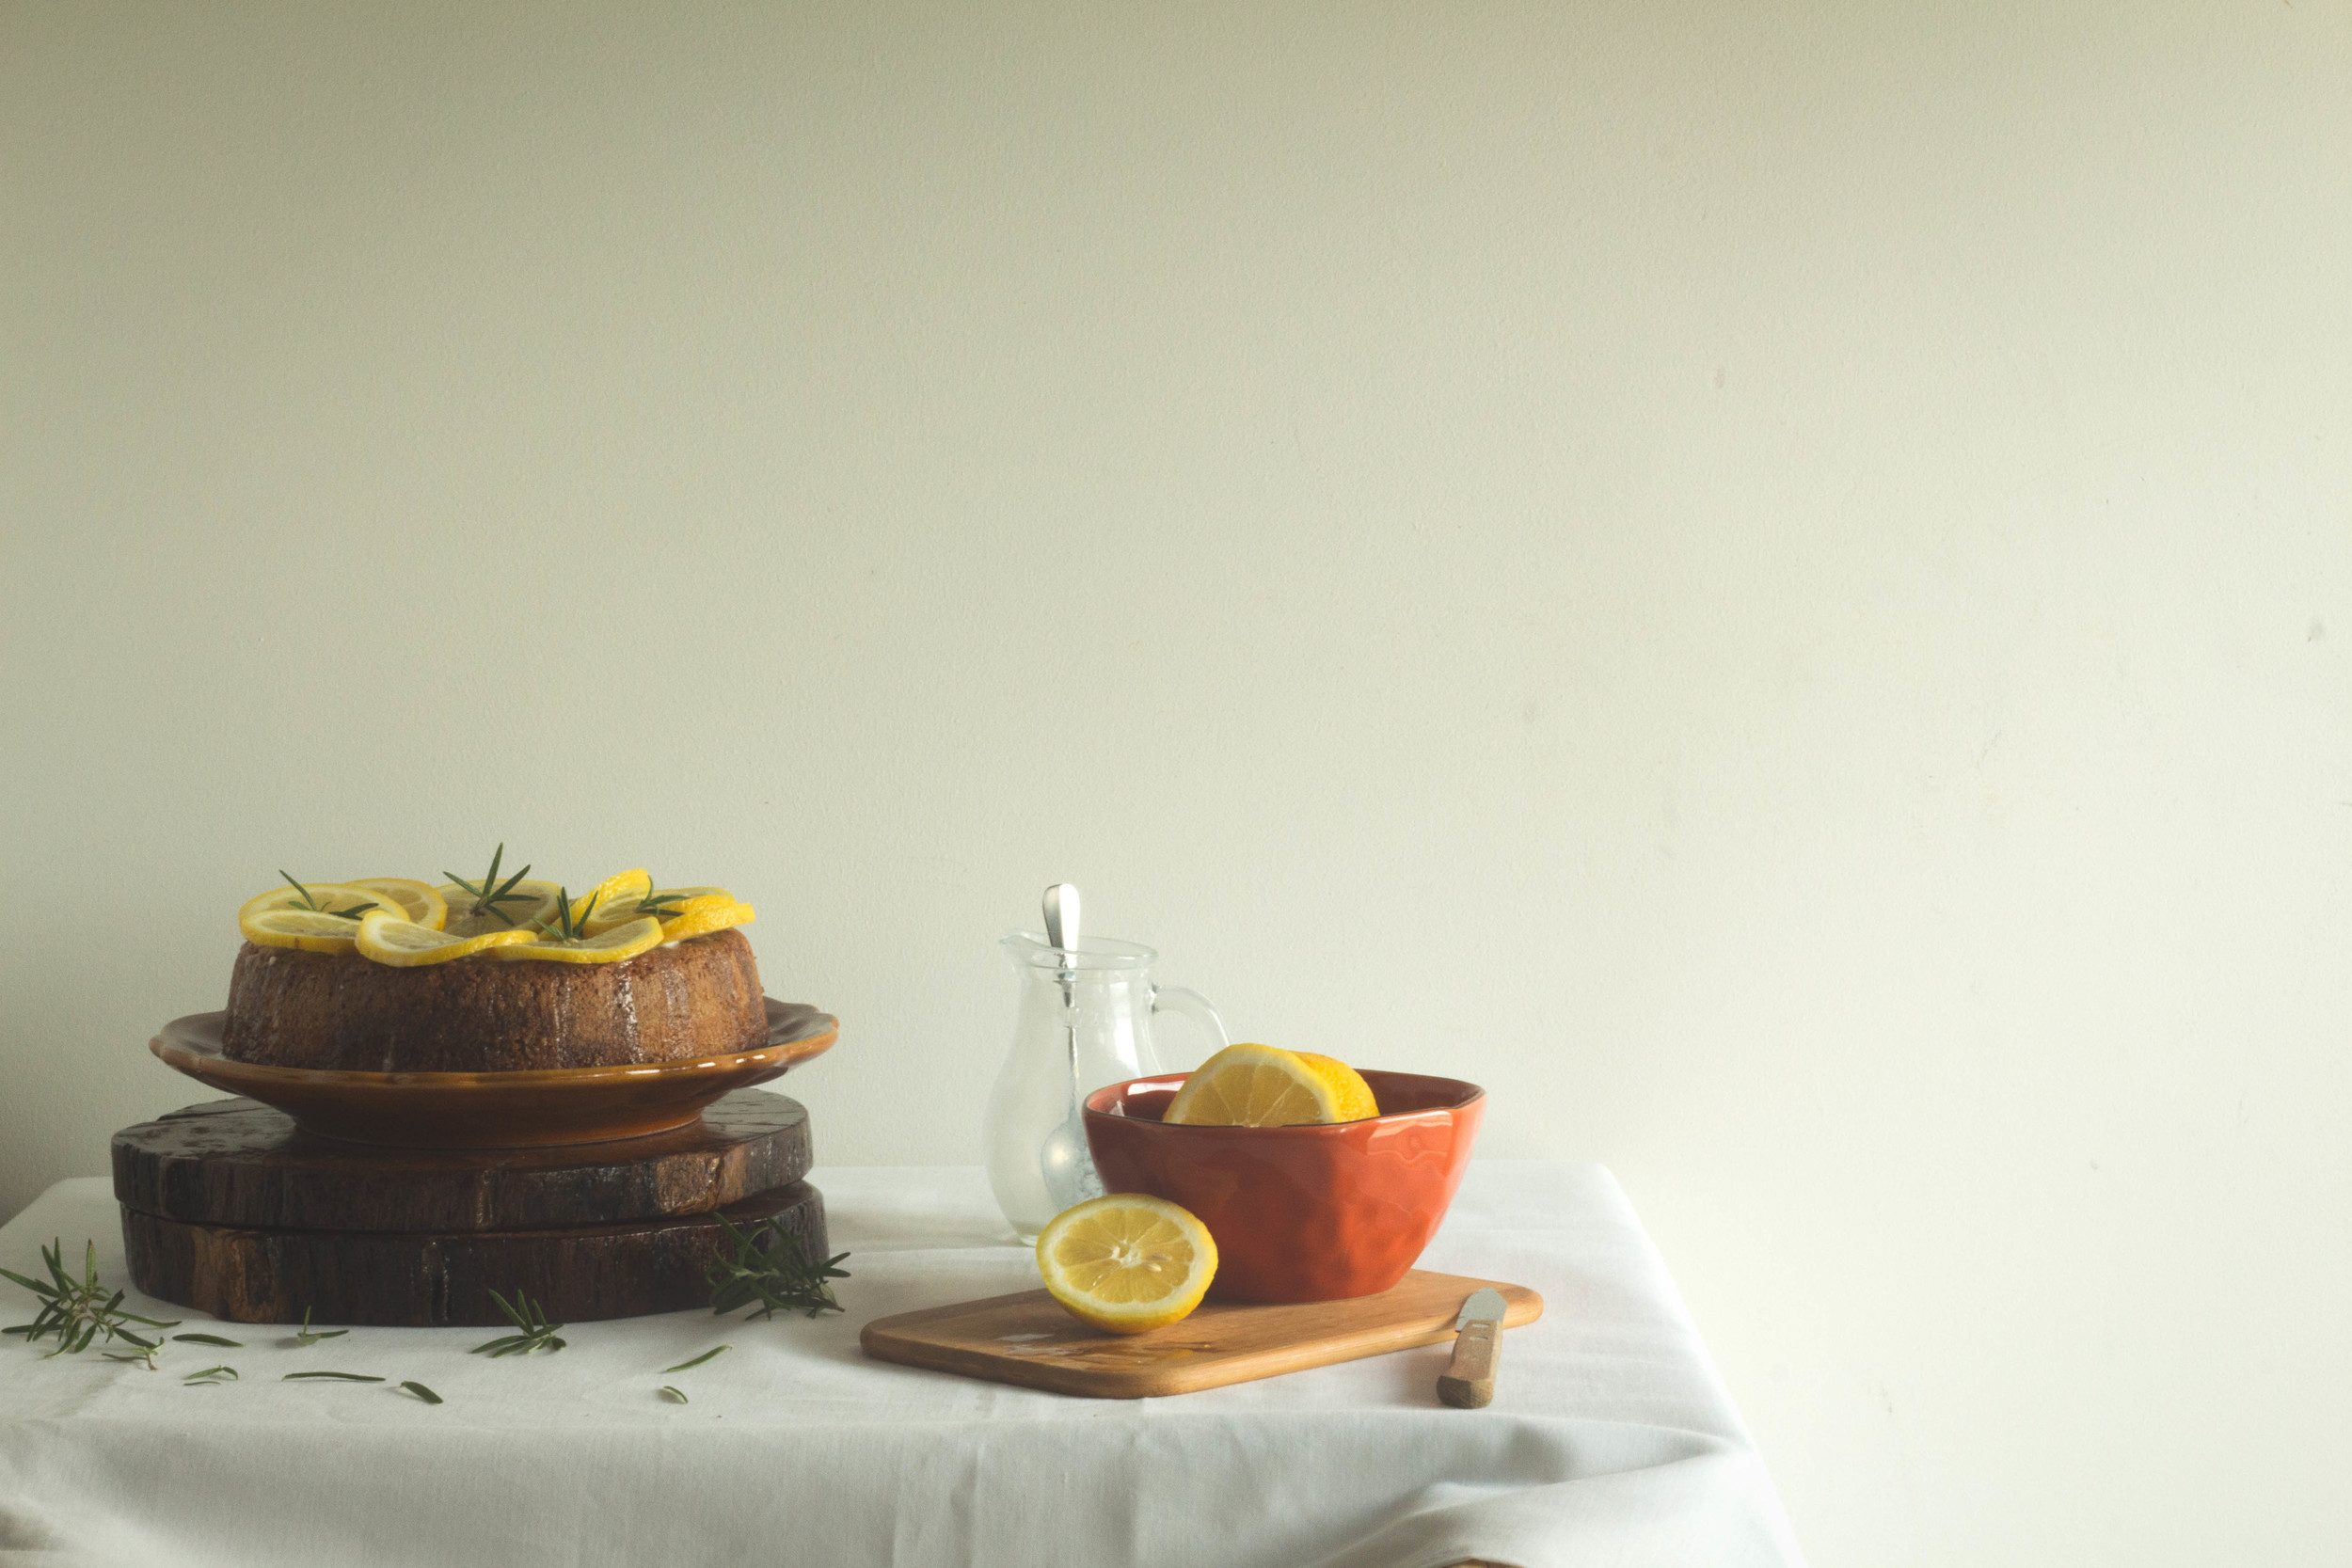 rosemary.lemon.cake.6